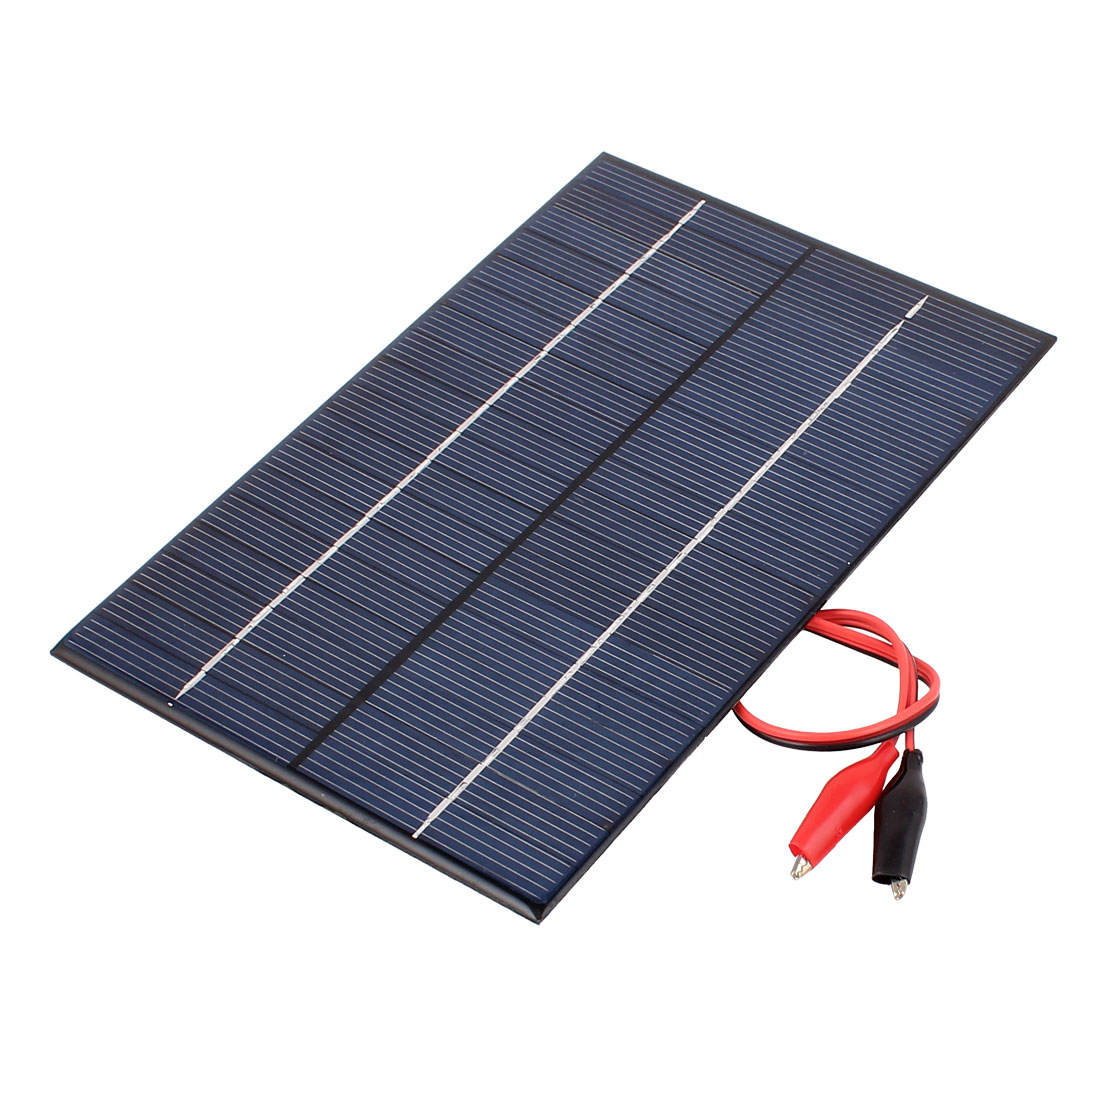 18V 4.2W DIY Polycrystallinesilicon Solar Panel Power Cell Battery Charger 200mm x 130mm